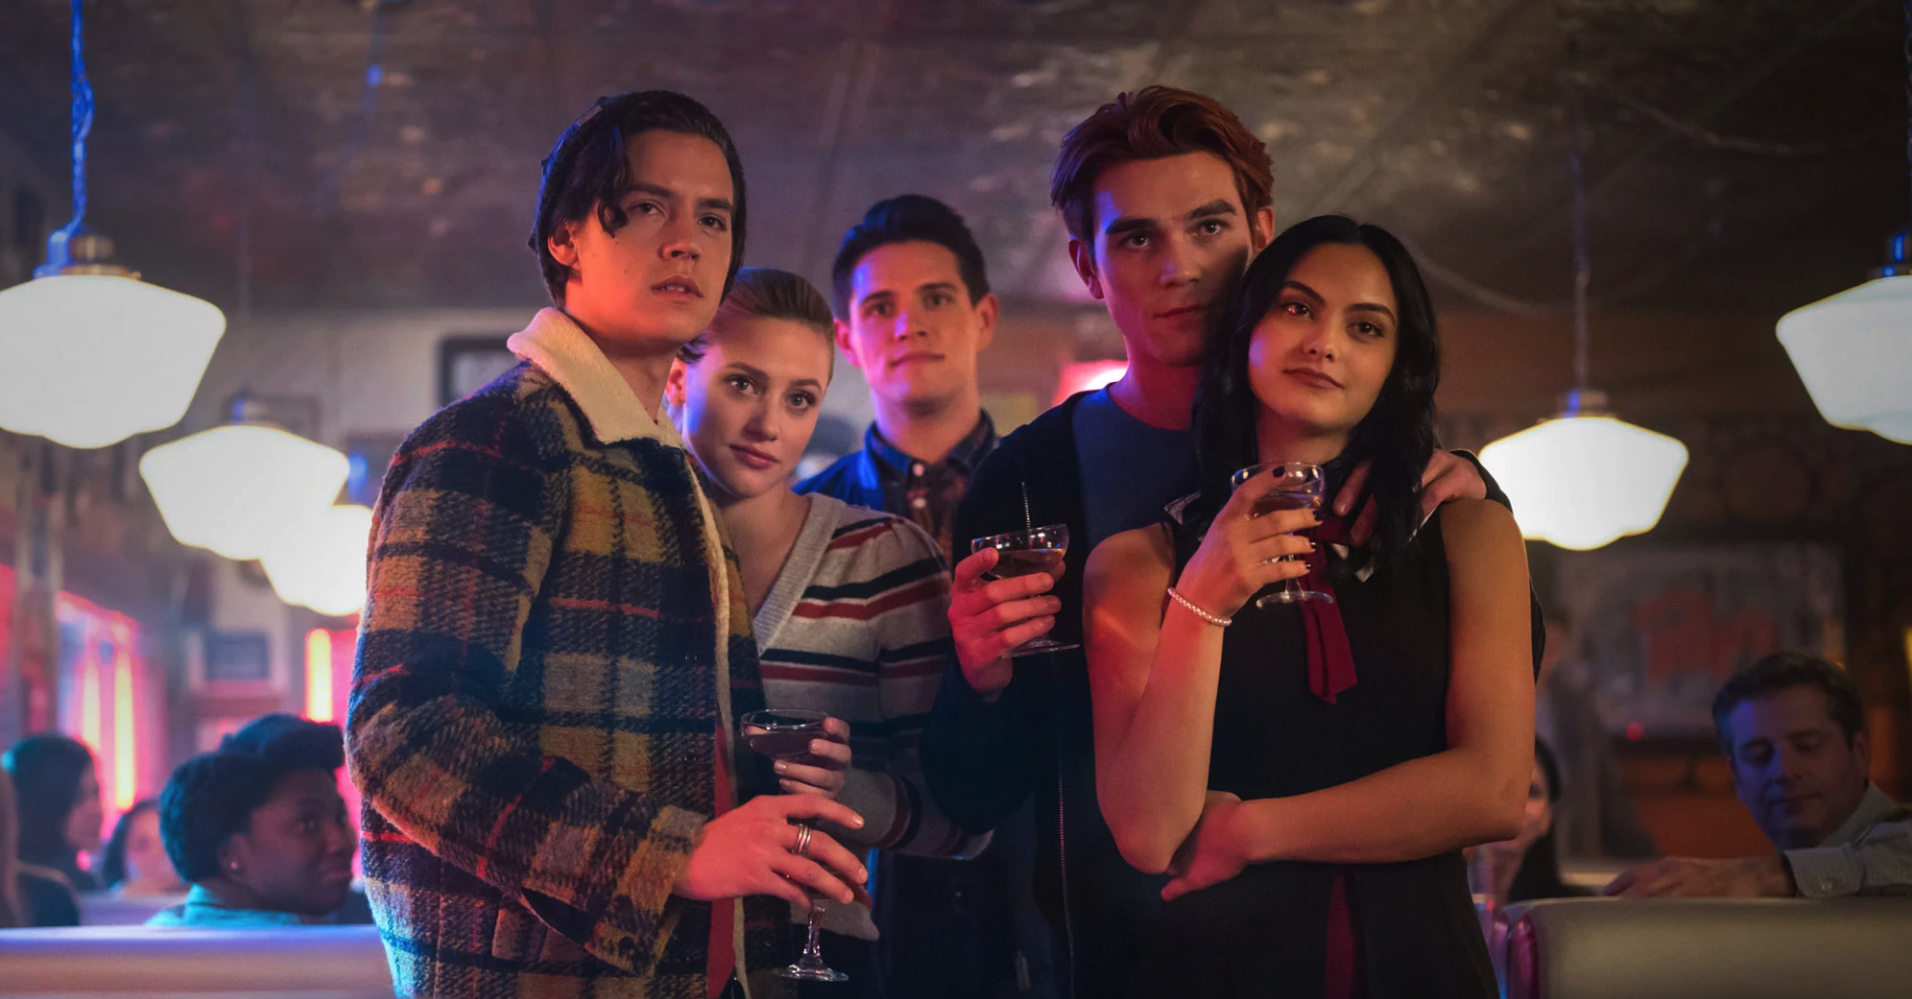 Jughead, Betty, Kevin, Archie and Veronica having a drink in Pop's